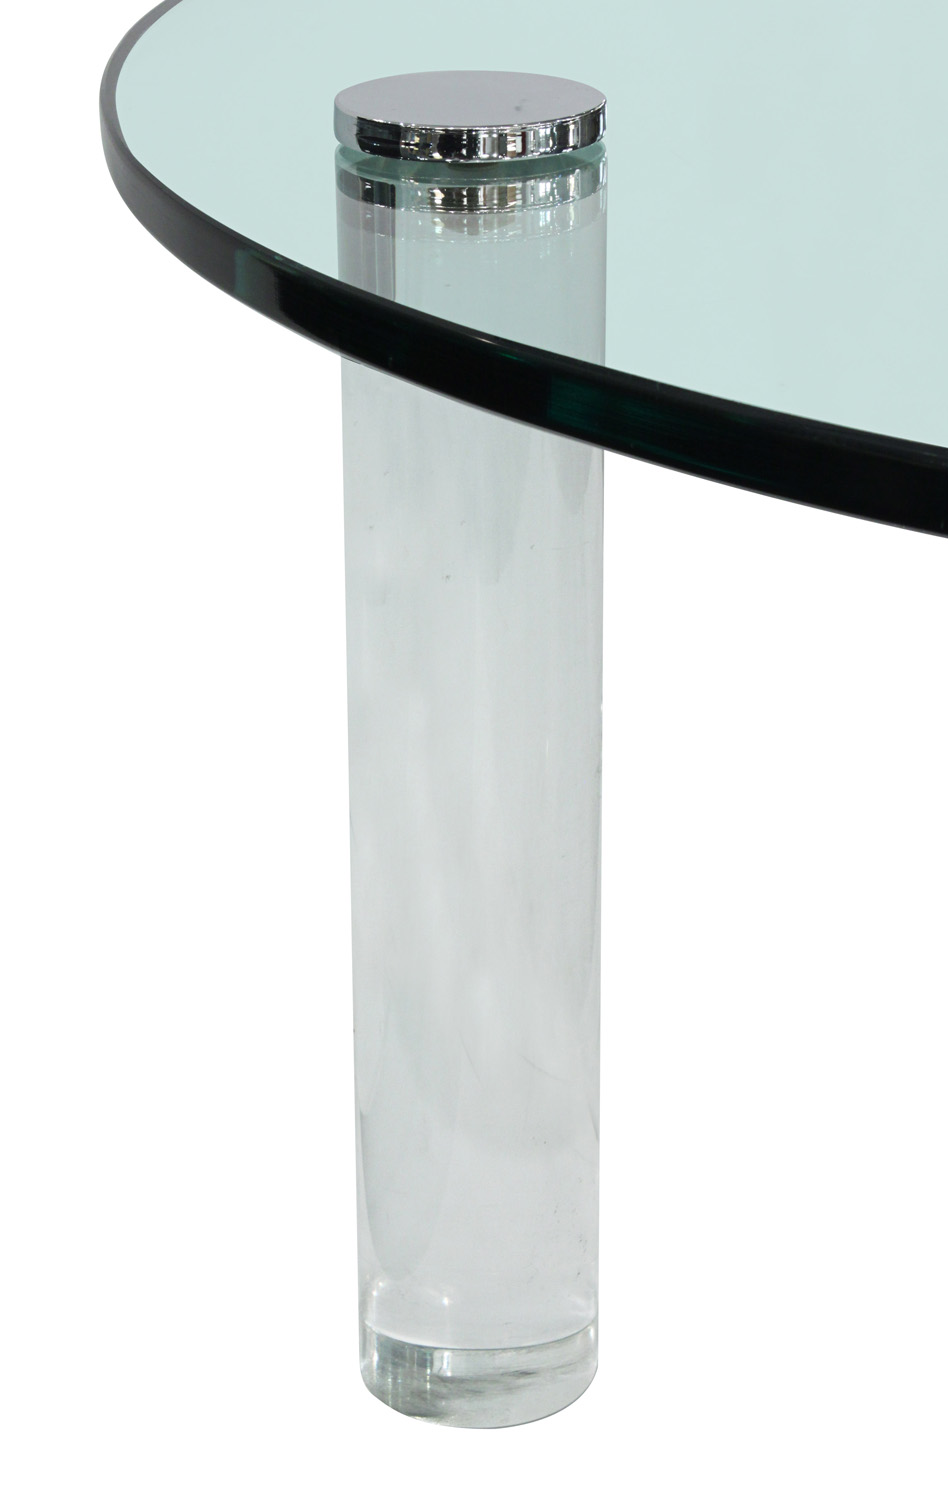 Pace 55 round lucite legs+gls top coffeetable382 detail2 hires.jpg